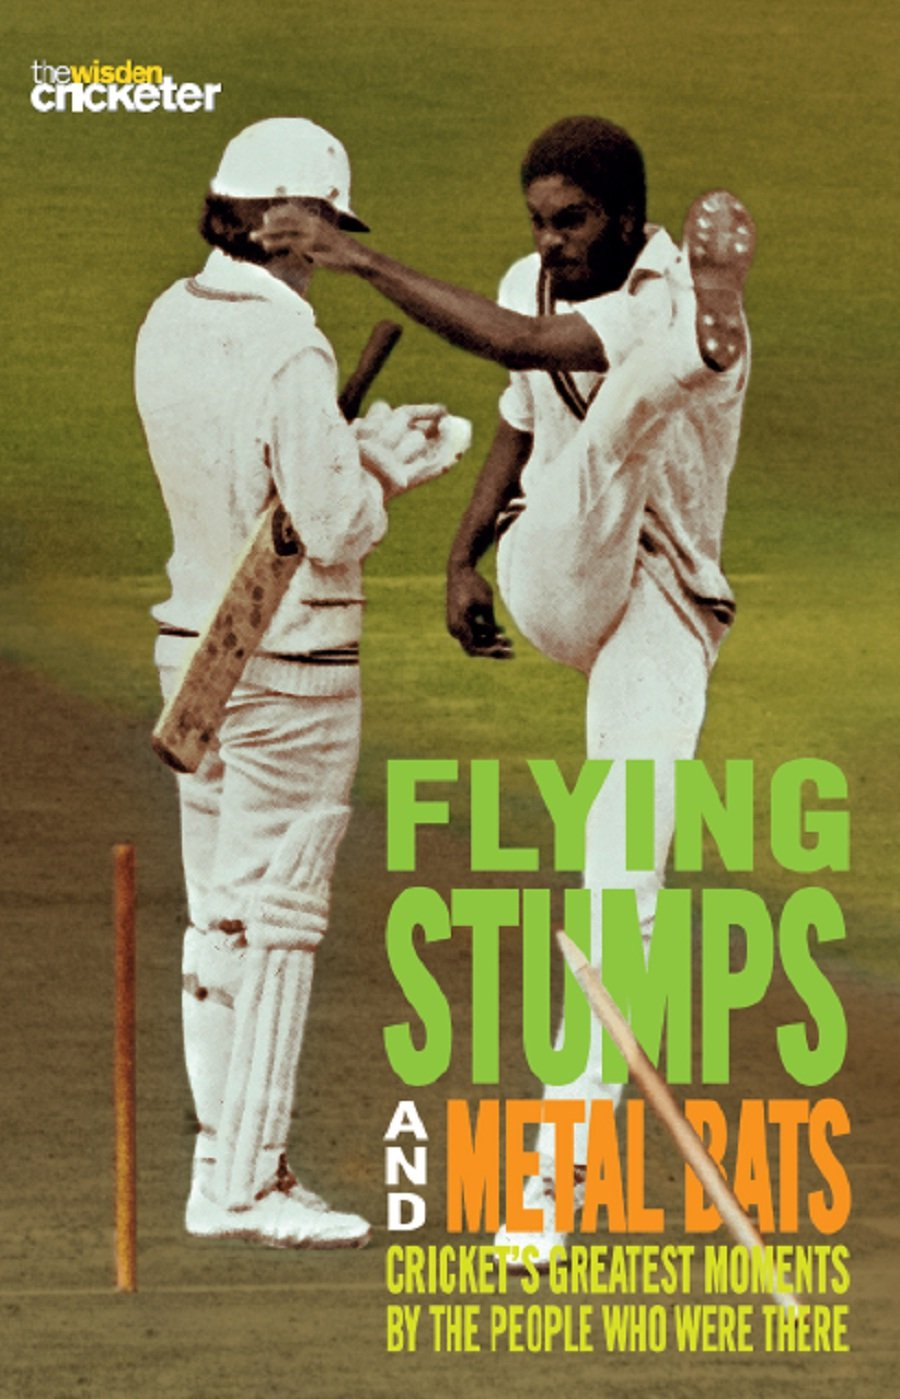 Image OfFlying Stumps And Metal Bats: Cricket's Greatest Moments By The People Who Were There (English Edition)